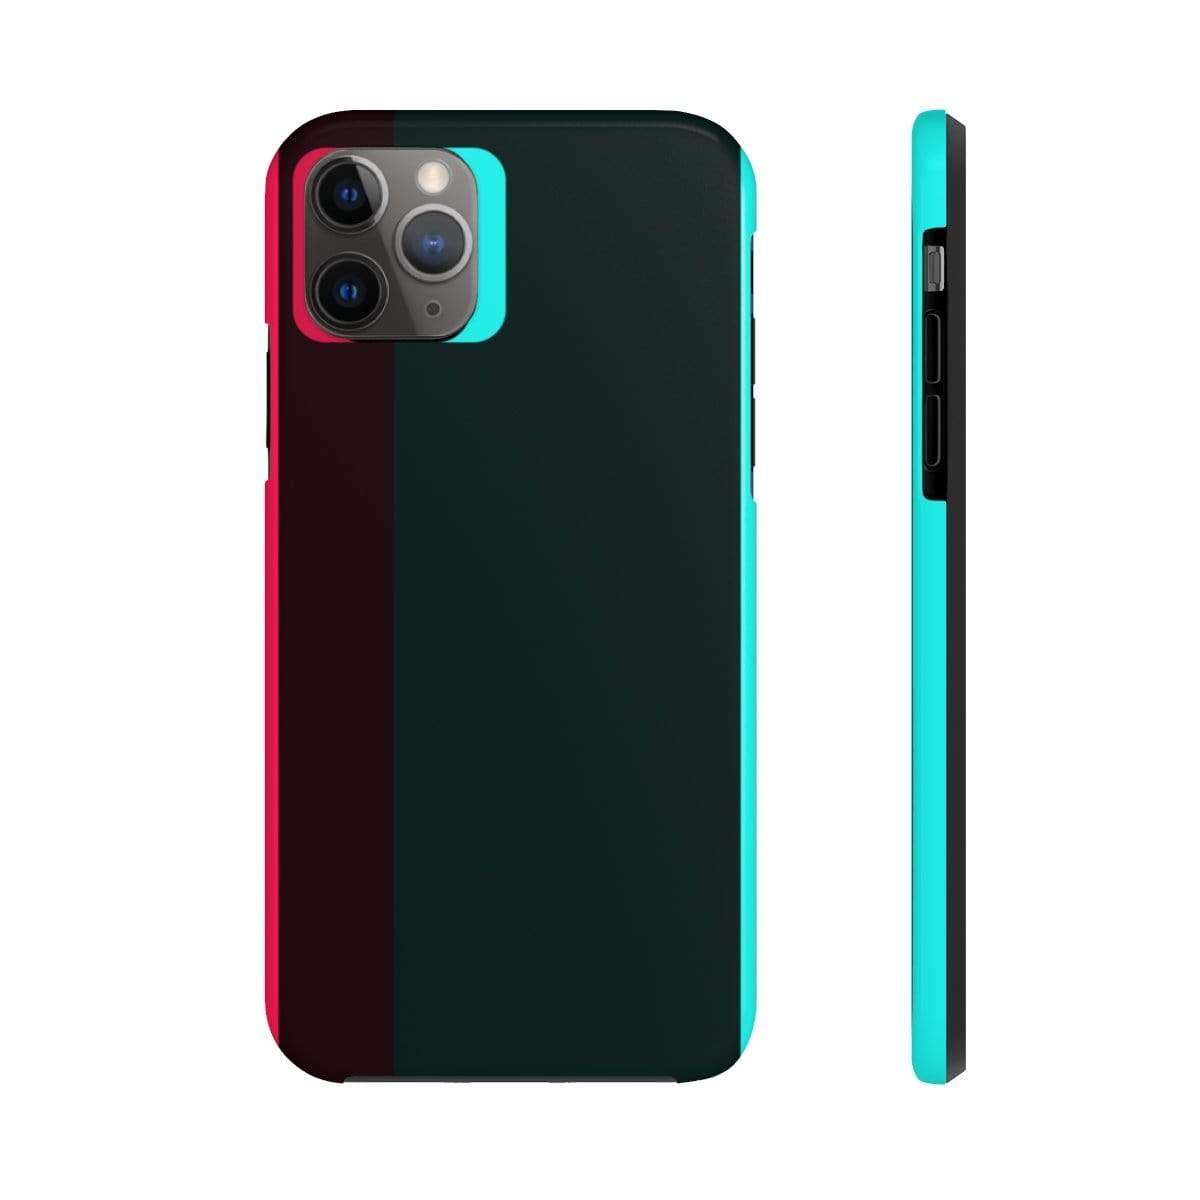 Plumskum Phone Case iPhone 11 Pro Max Plumskum Glitch IPhone 11 Pro Max Case